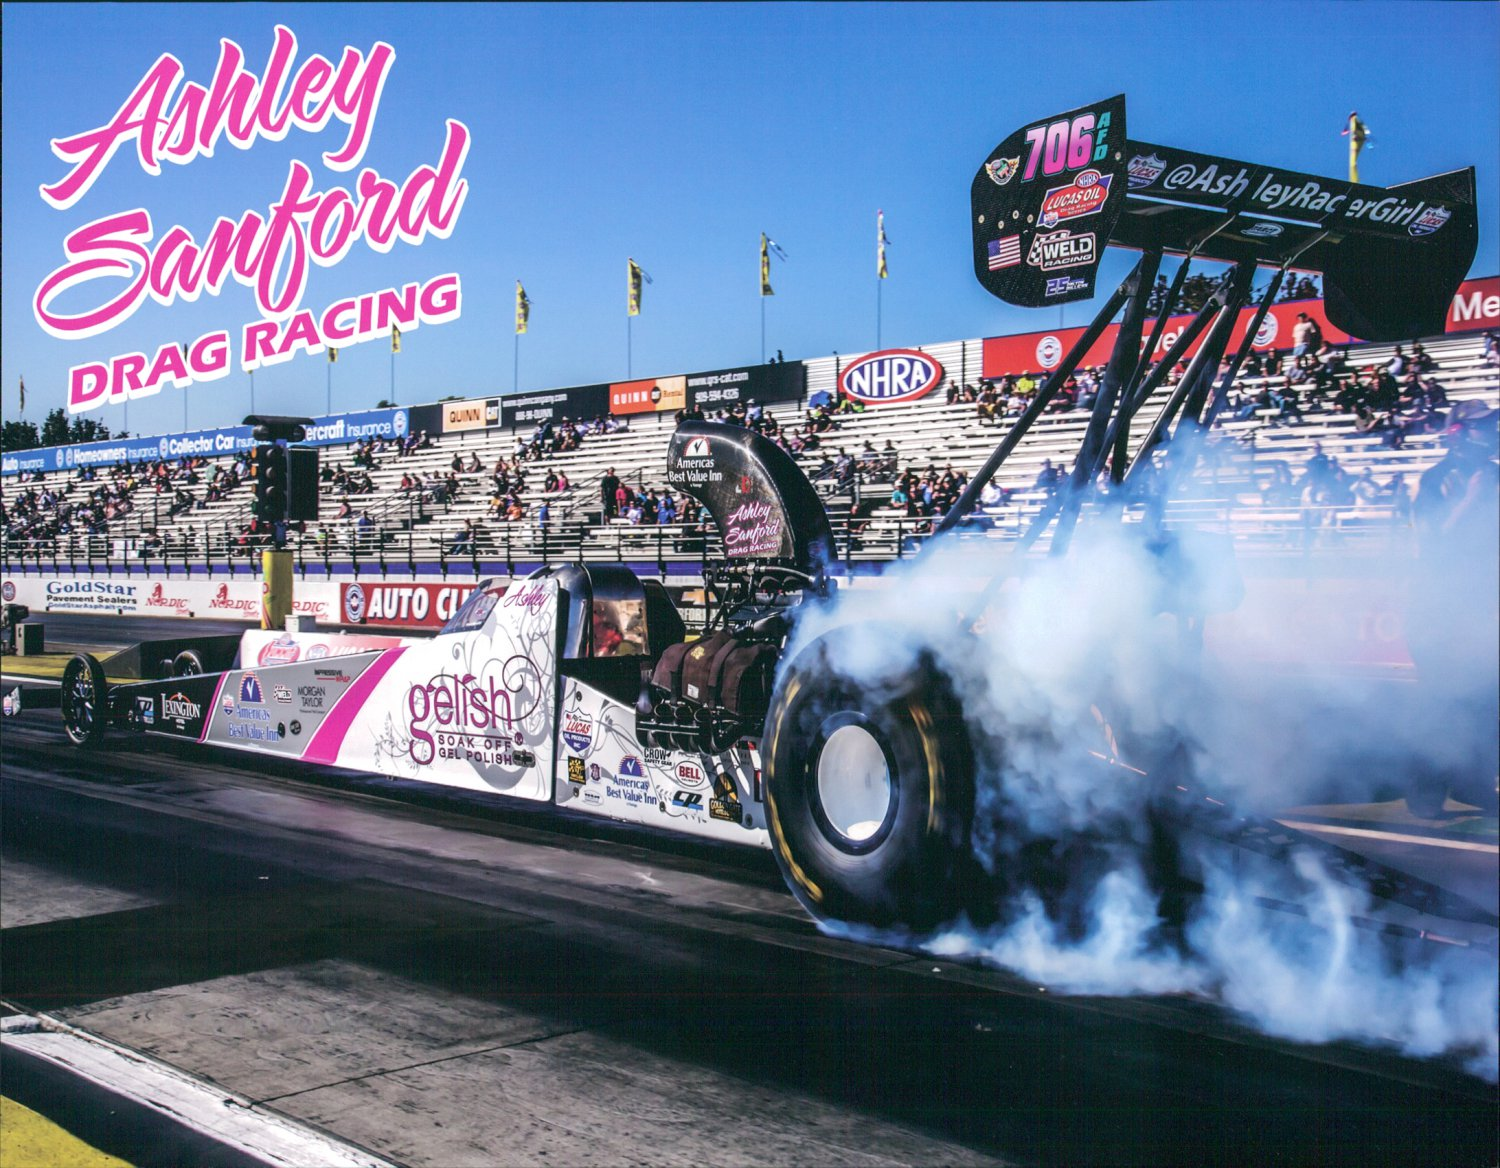 2016 NHRA TAD Handout Ashley Sanford wm